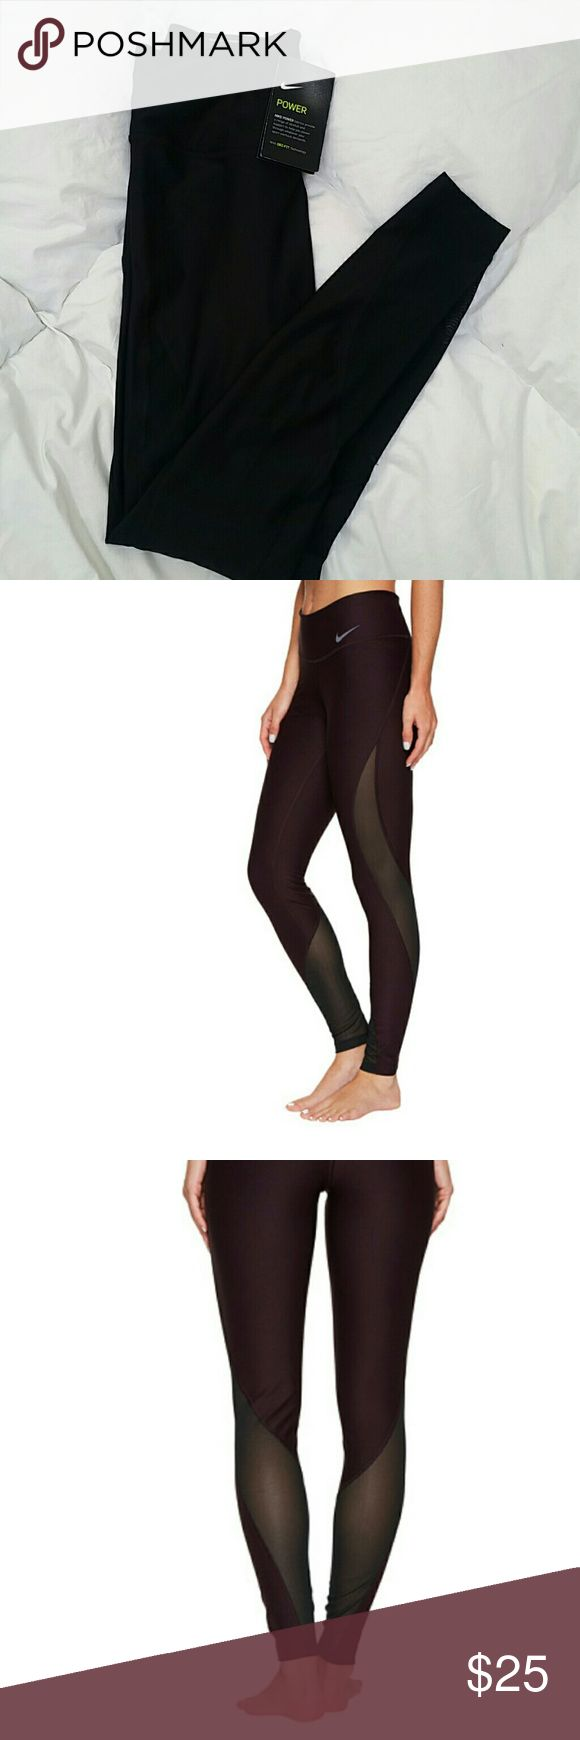 NIKE Tight Fit Womens' Training Pants Be your best self with these workout pants! Mesh sides make for stylish and breathable pants. True to size. Never been worn! Nike Pants